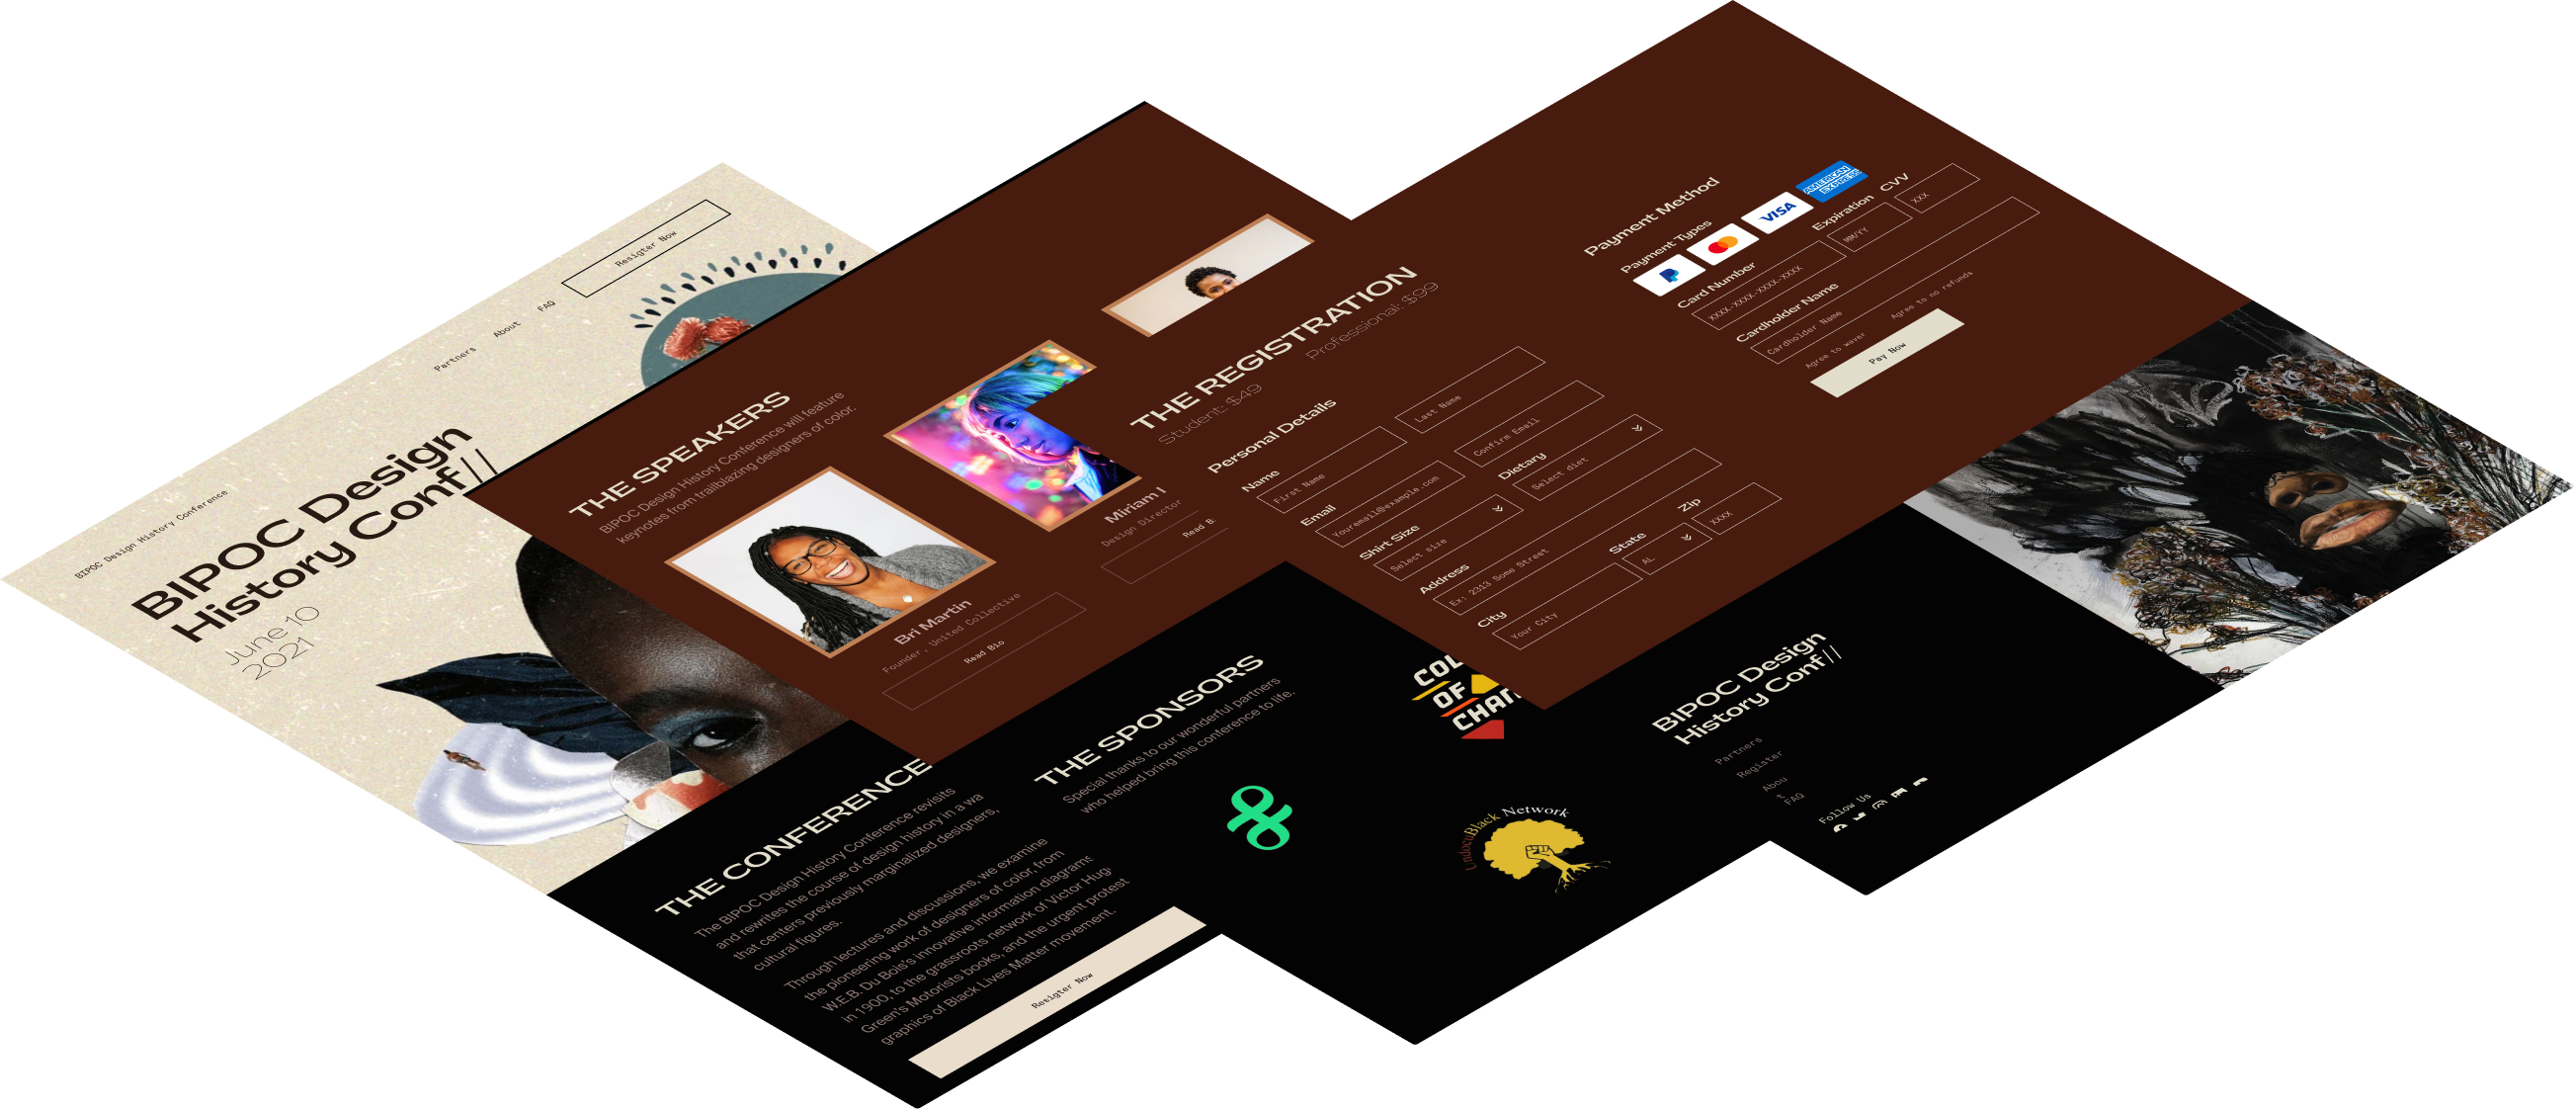 Designing an event landing page with payment and registration